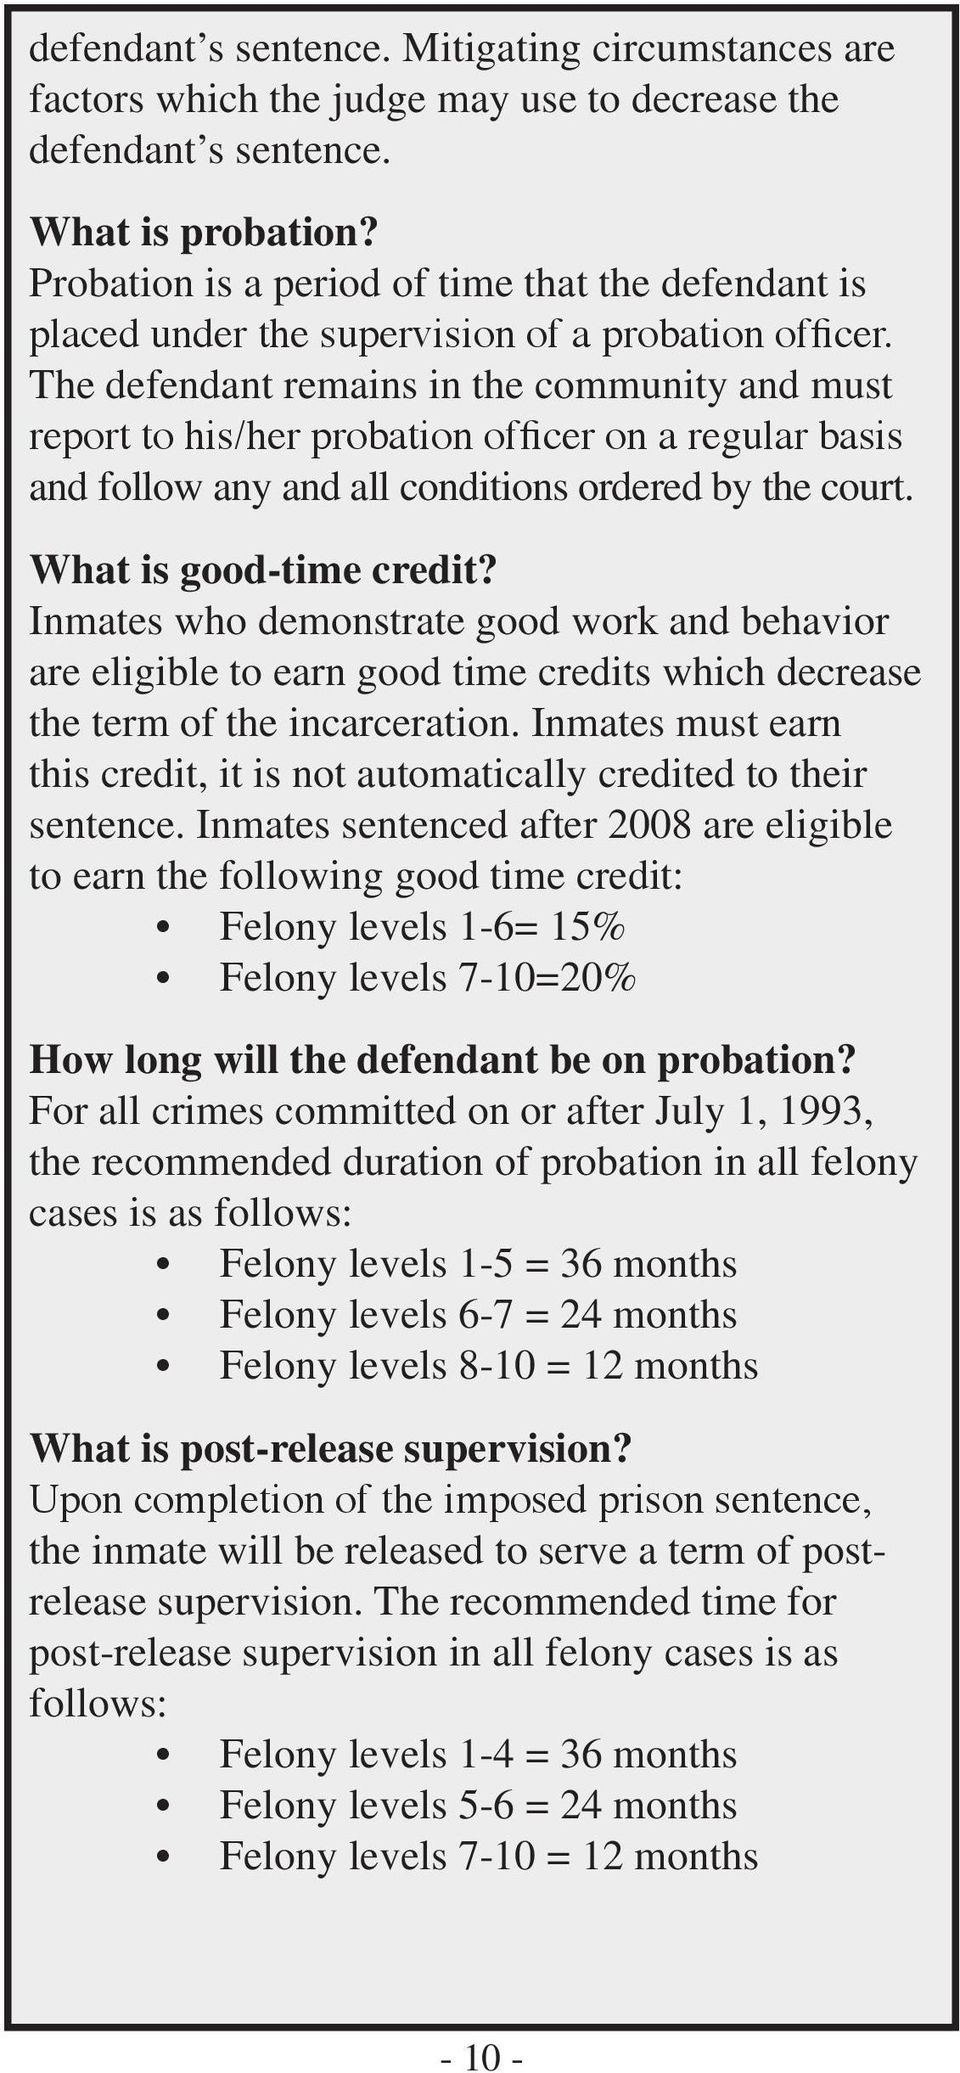 The defendant remains in the community and must report to his/her probation officer on a regular basis and follow any and all conditions ordered by the court. What is good-time credit?